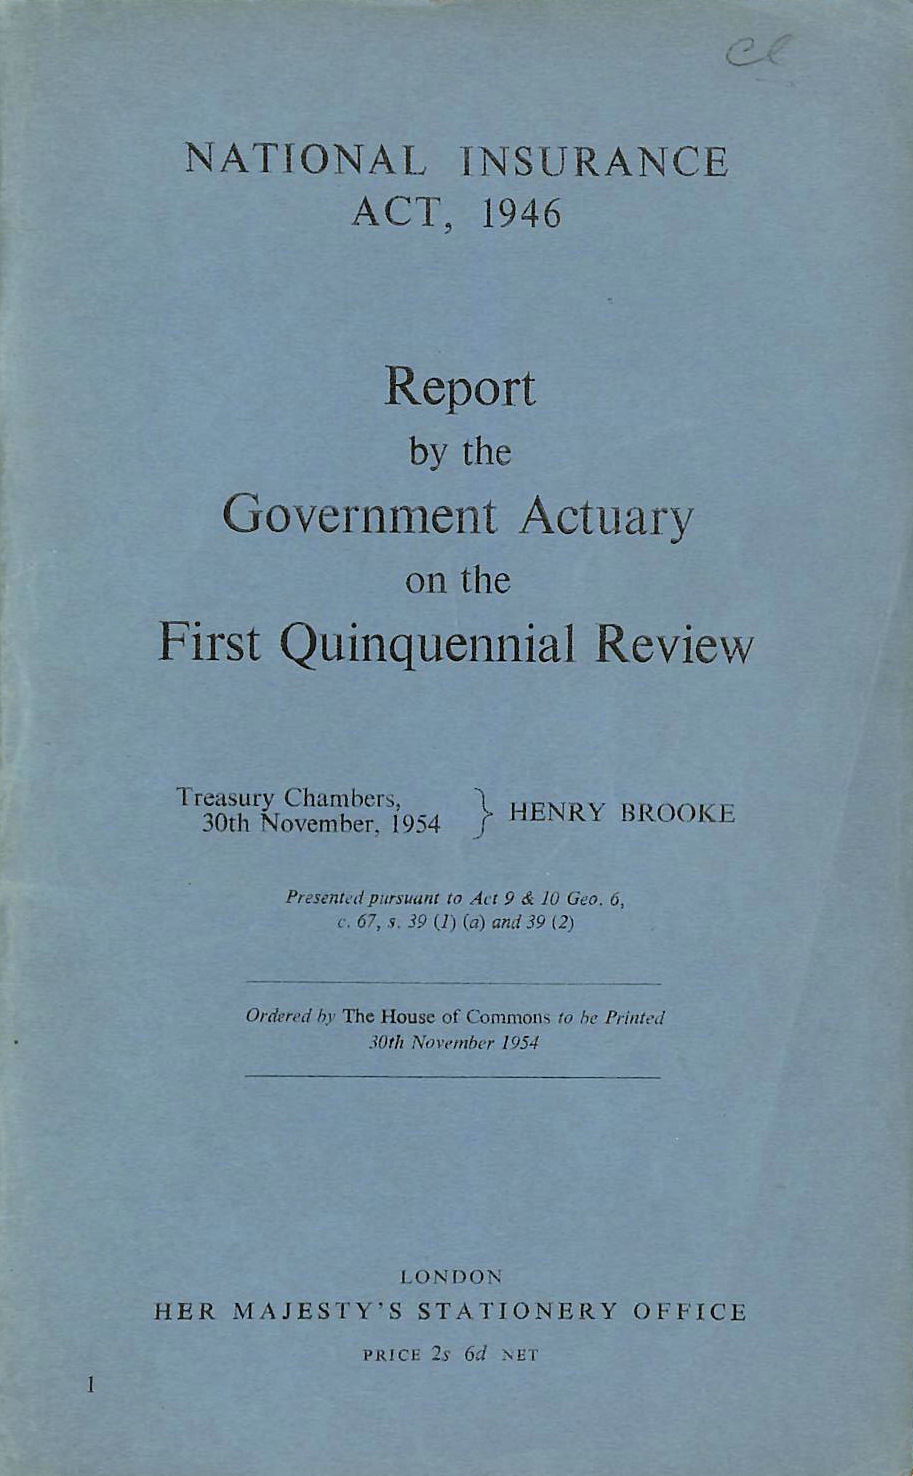 Image for National Insurance Act, 1946 Report by the Government Actuary on the First Quinquennial Review